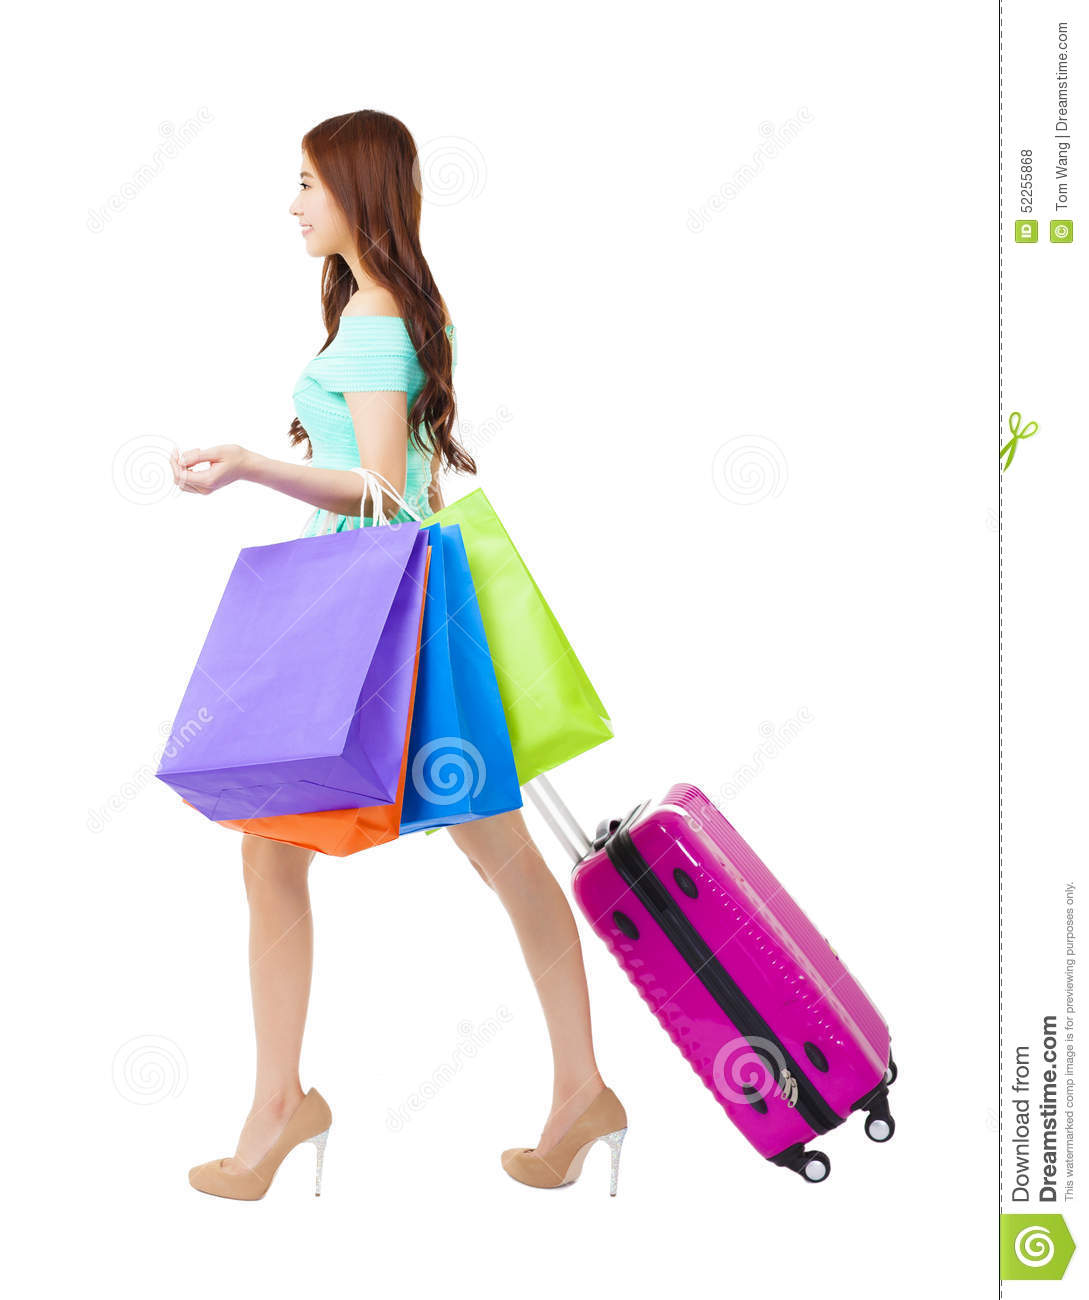 Creative Woman Holding Colorful Bags Stock Photography | CartoonDealer.com #30316976